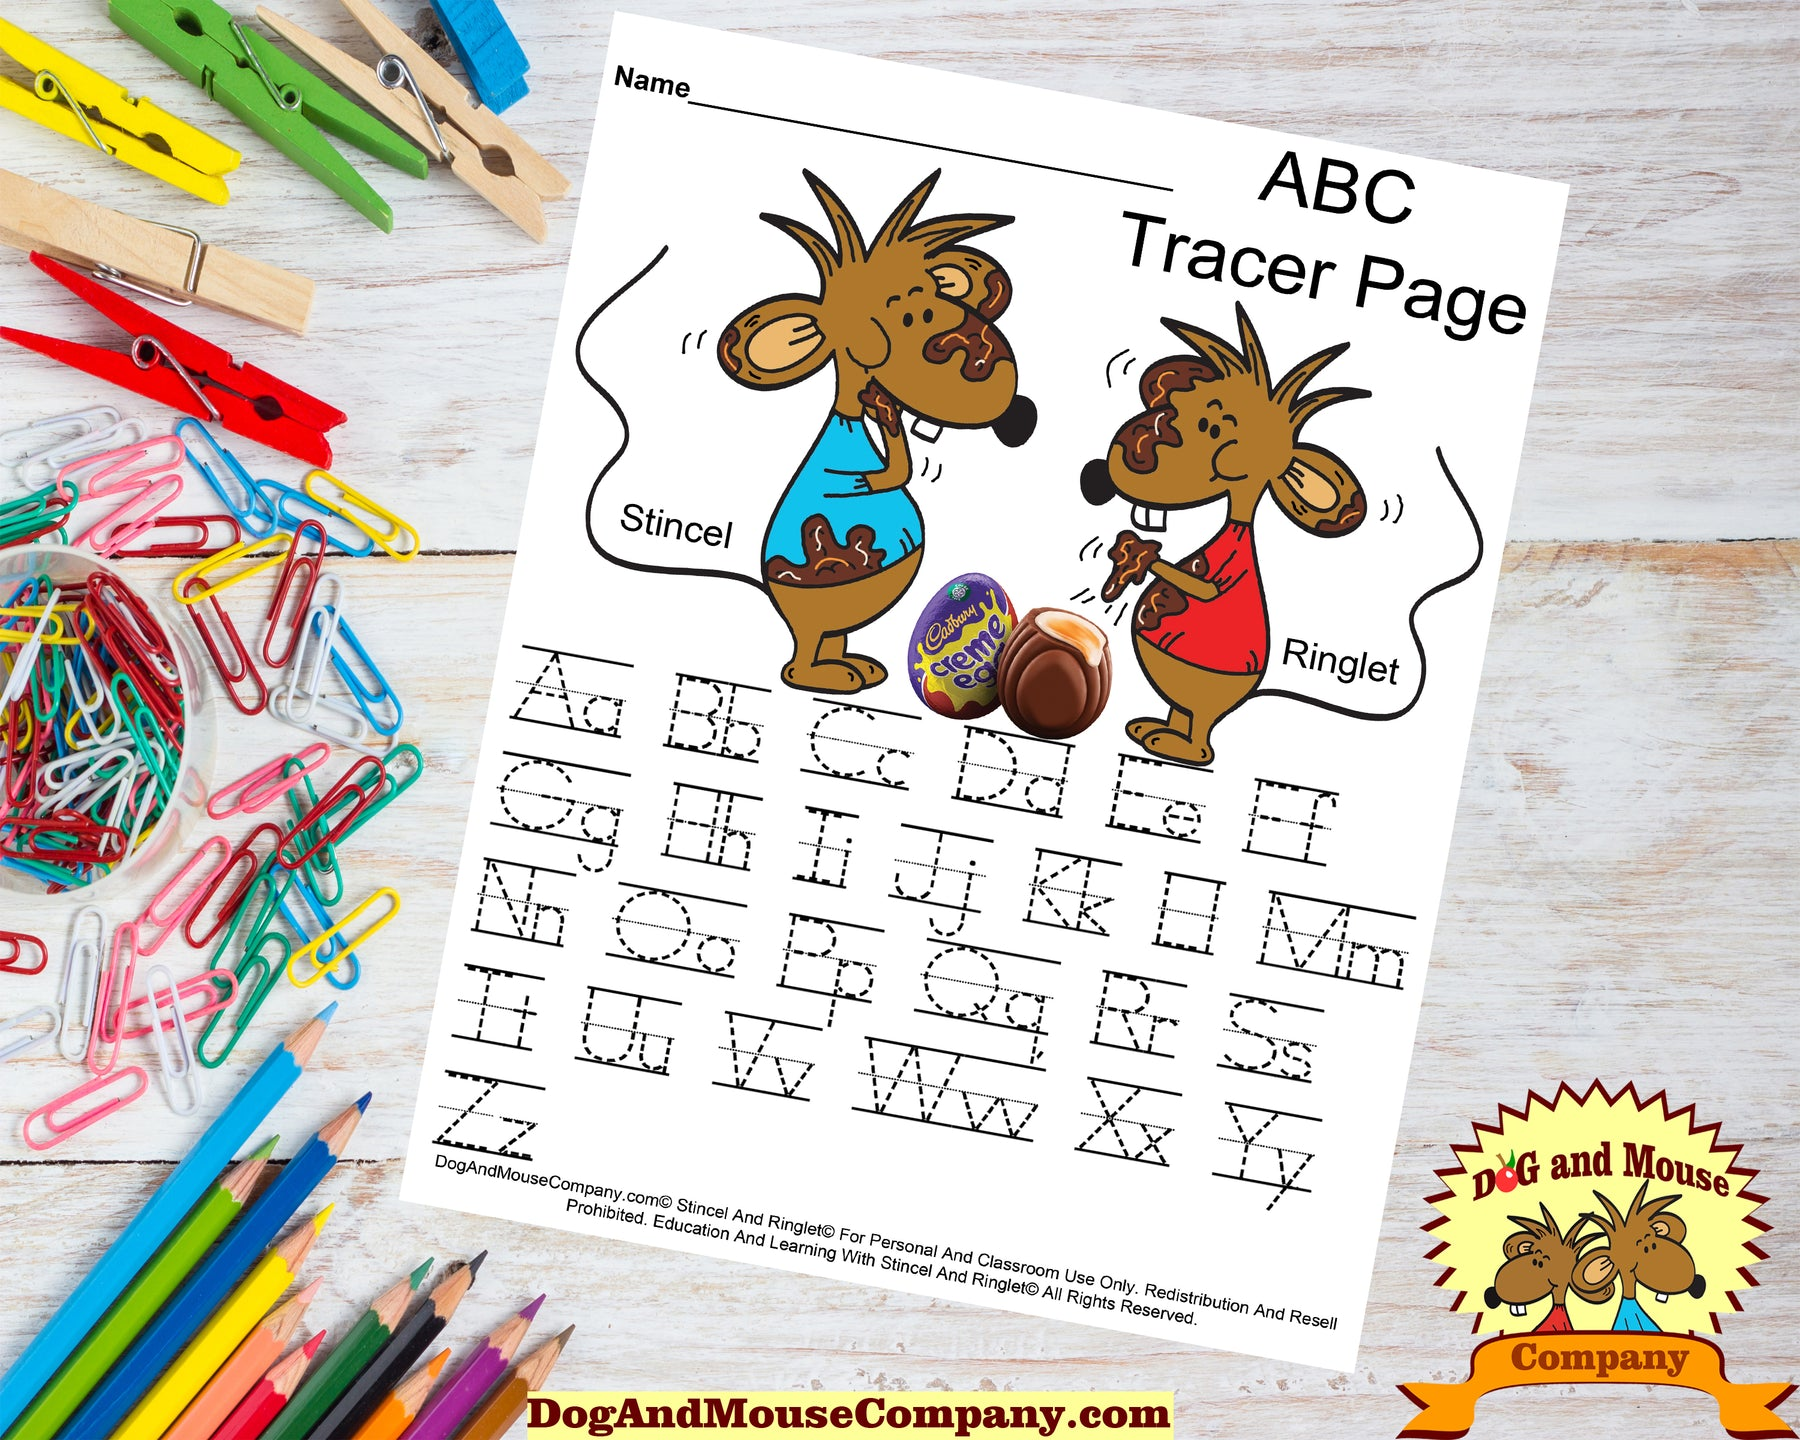 Easter ABC Tracer Page Preschool Worksheet. Stincel and Ringlet Eating Cadbury Eggs by DogAndMouseCompany.com